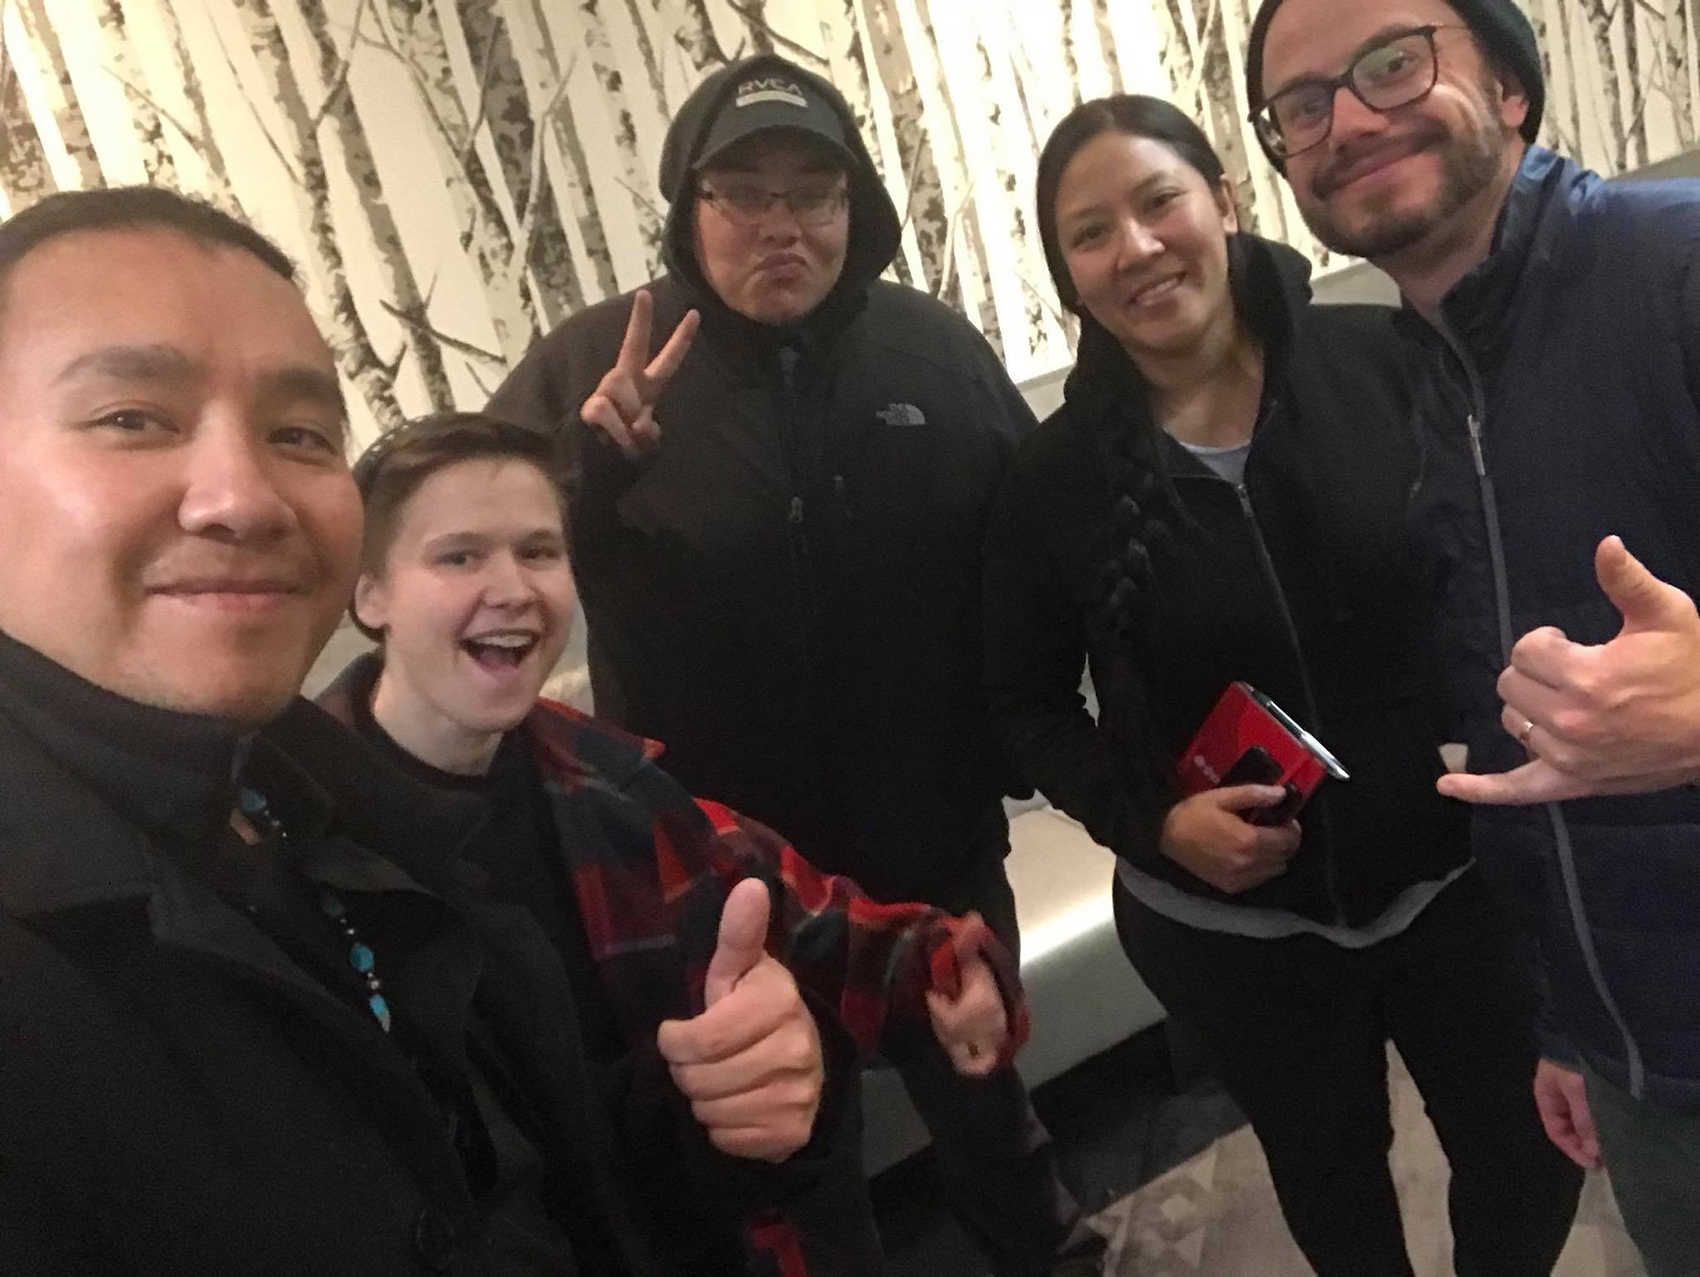 Film graduate Candy Fox and her production crew for her film ahkâmêyimo nitânis (Keep Going, My Daughter). This photo was taken on the first day of production and includes (left to right) producer Chris Tyrone Ross, camera assistant Elian Mikkola, sound recordist Muskwa Lerat, Fox, and director of photography Aaron Bernakevitch. The film was shot in October 2018. (Photo courtesy of Candy Fox)